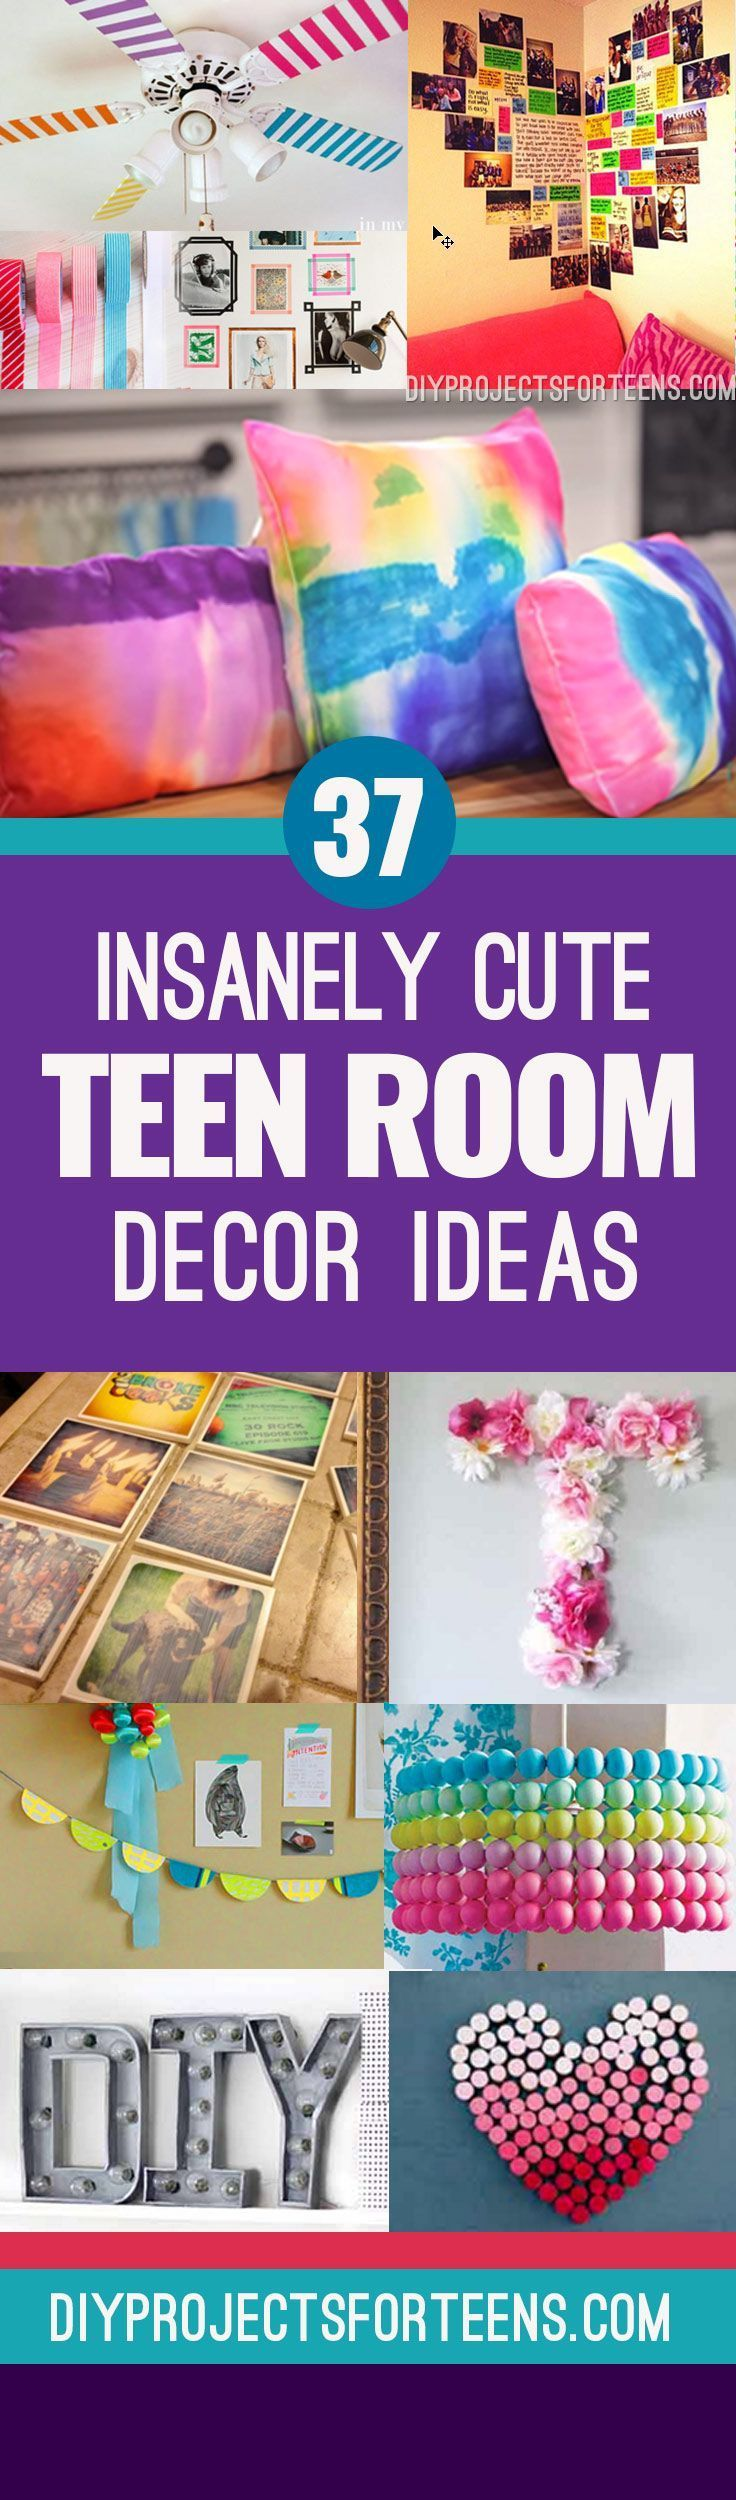 37 insanely cute teen bedroom ideas for diy decor | girls bedroom